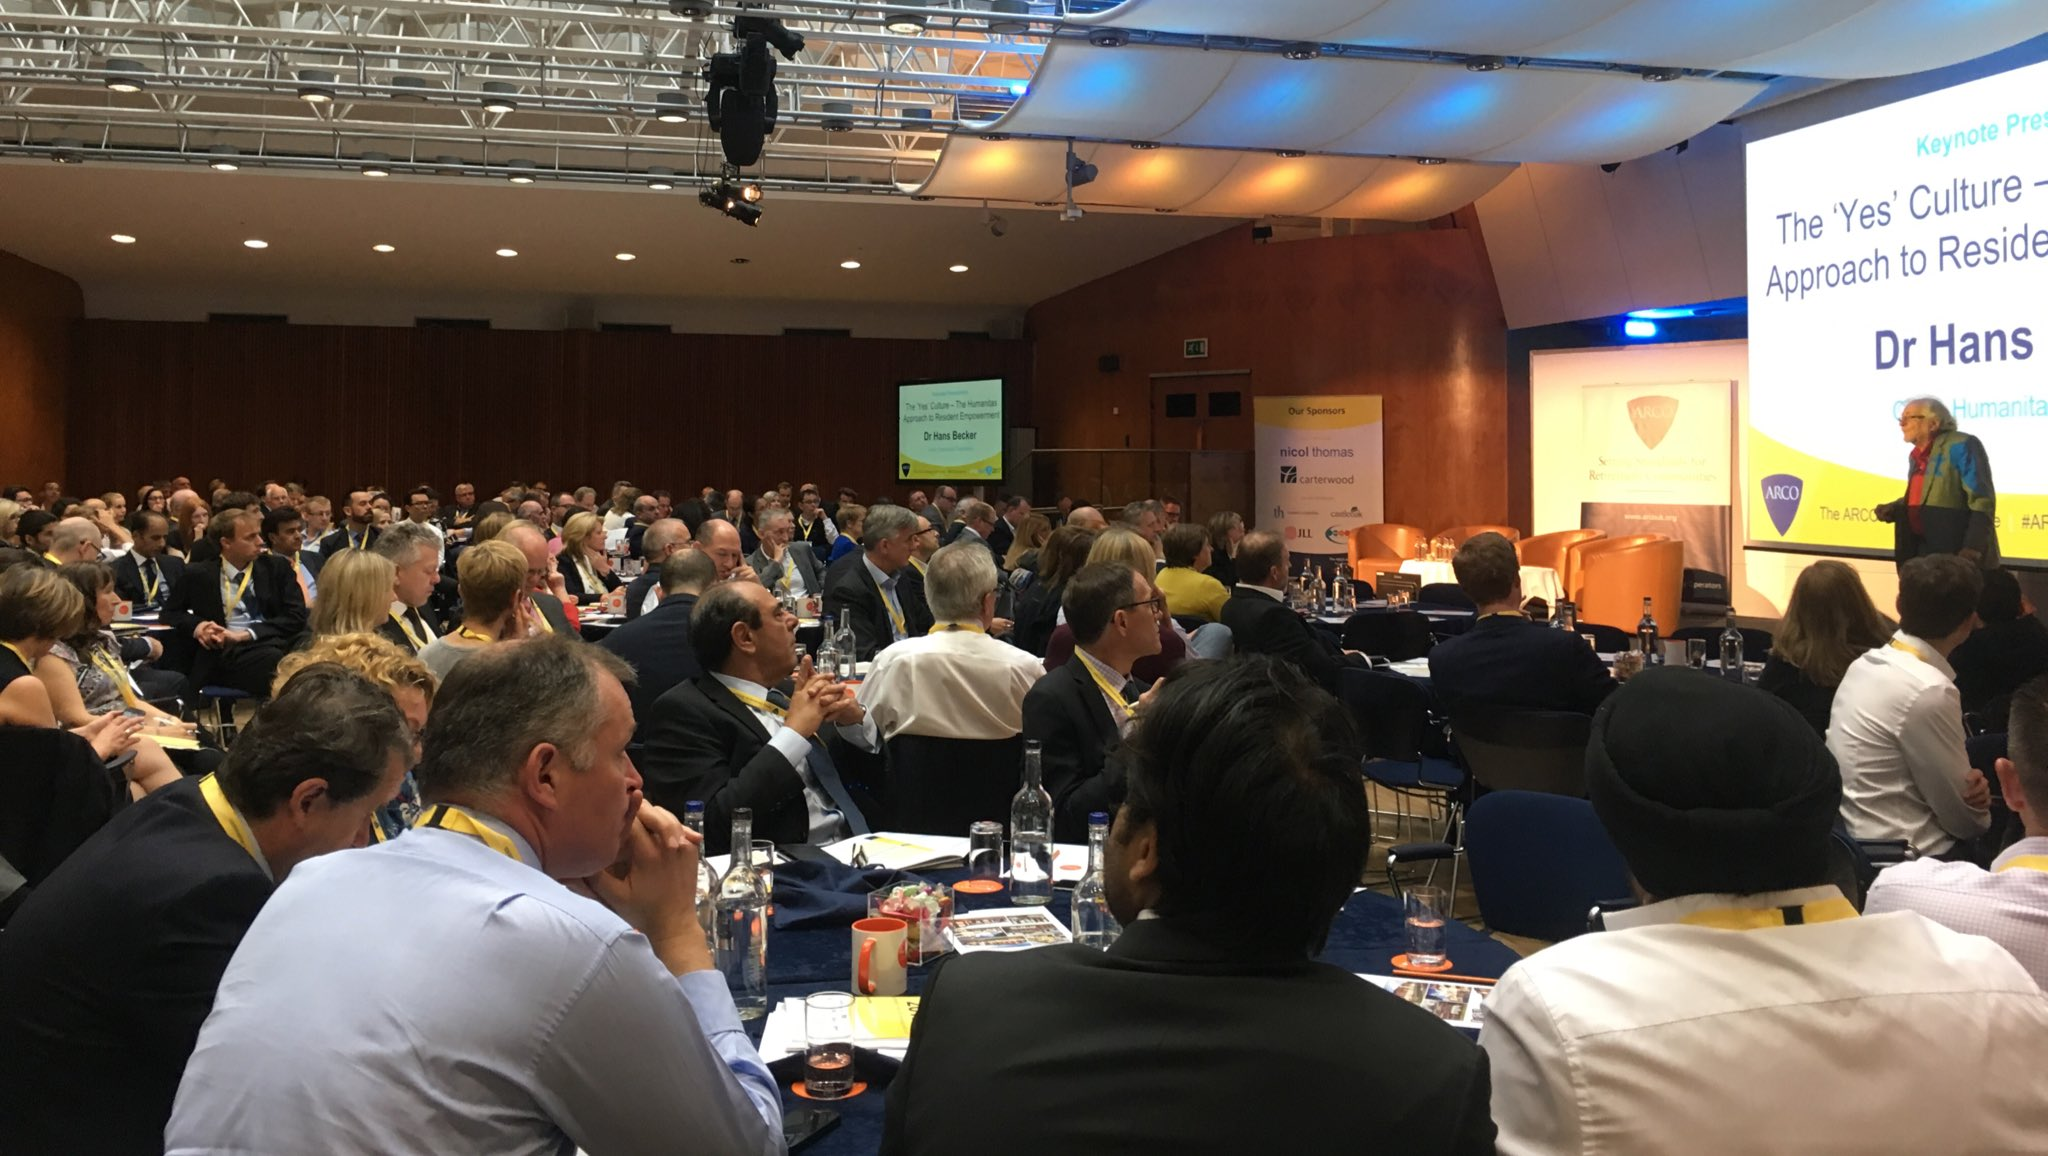 Great turnout for the @ARCOtweets conference. Looking forward to some interesting sessions. https://t.co/LMswd45jbF